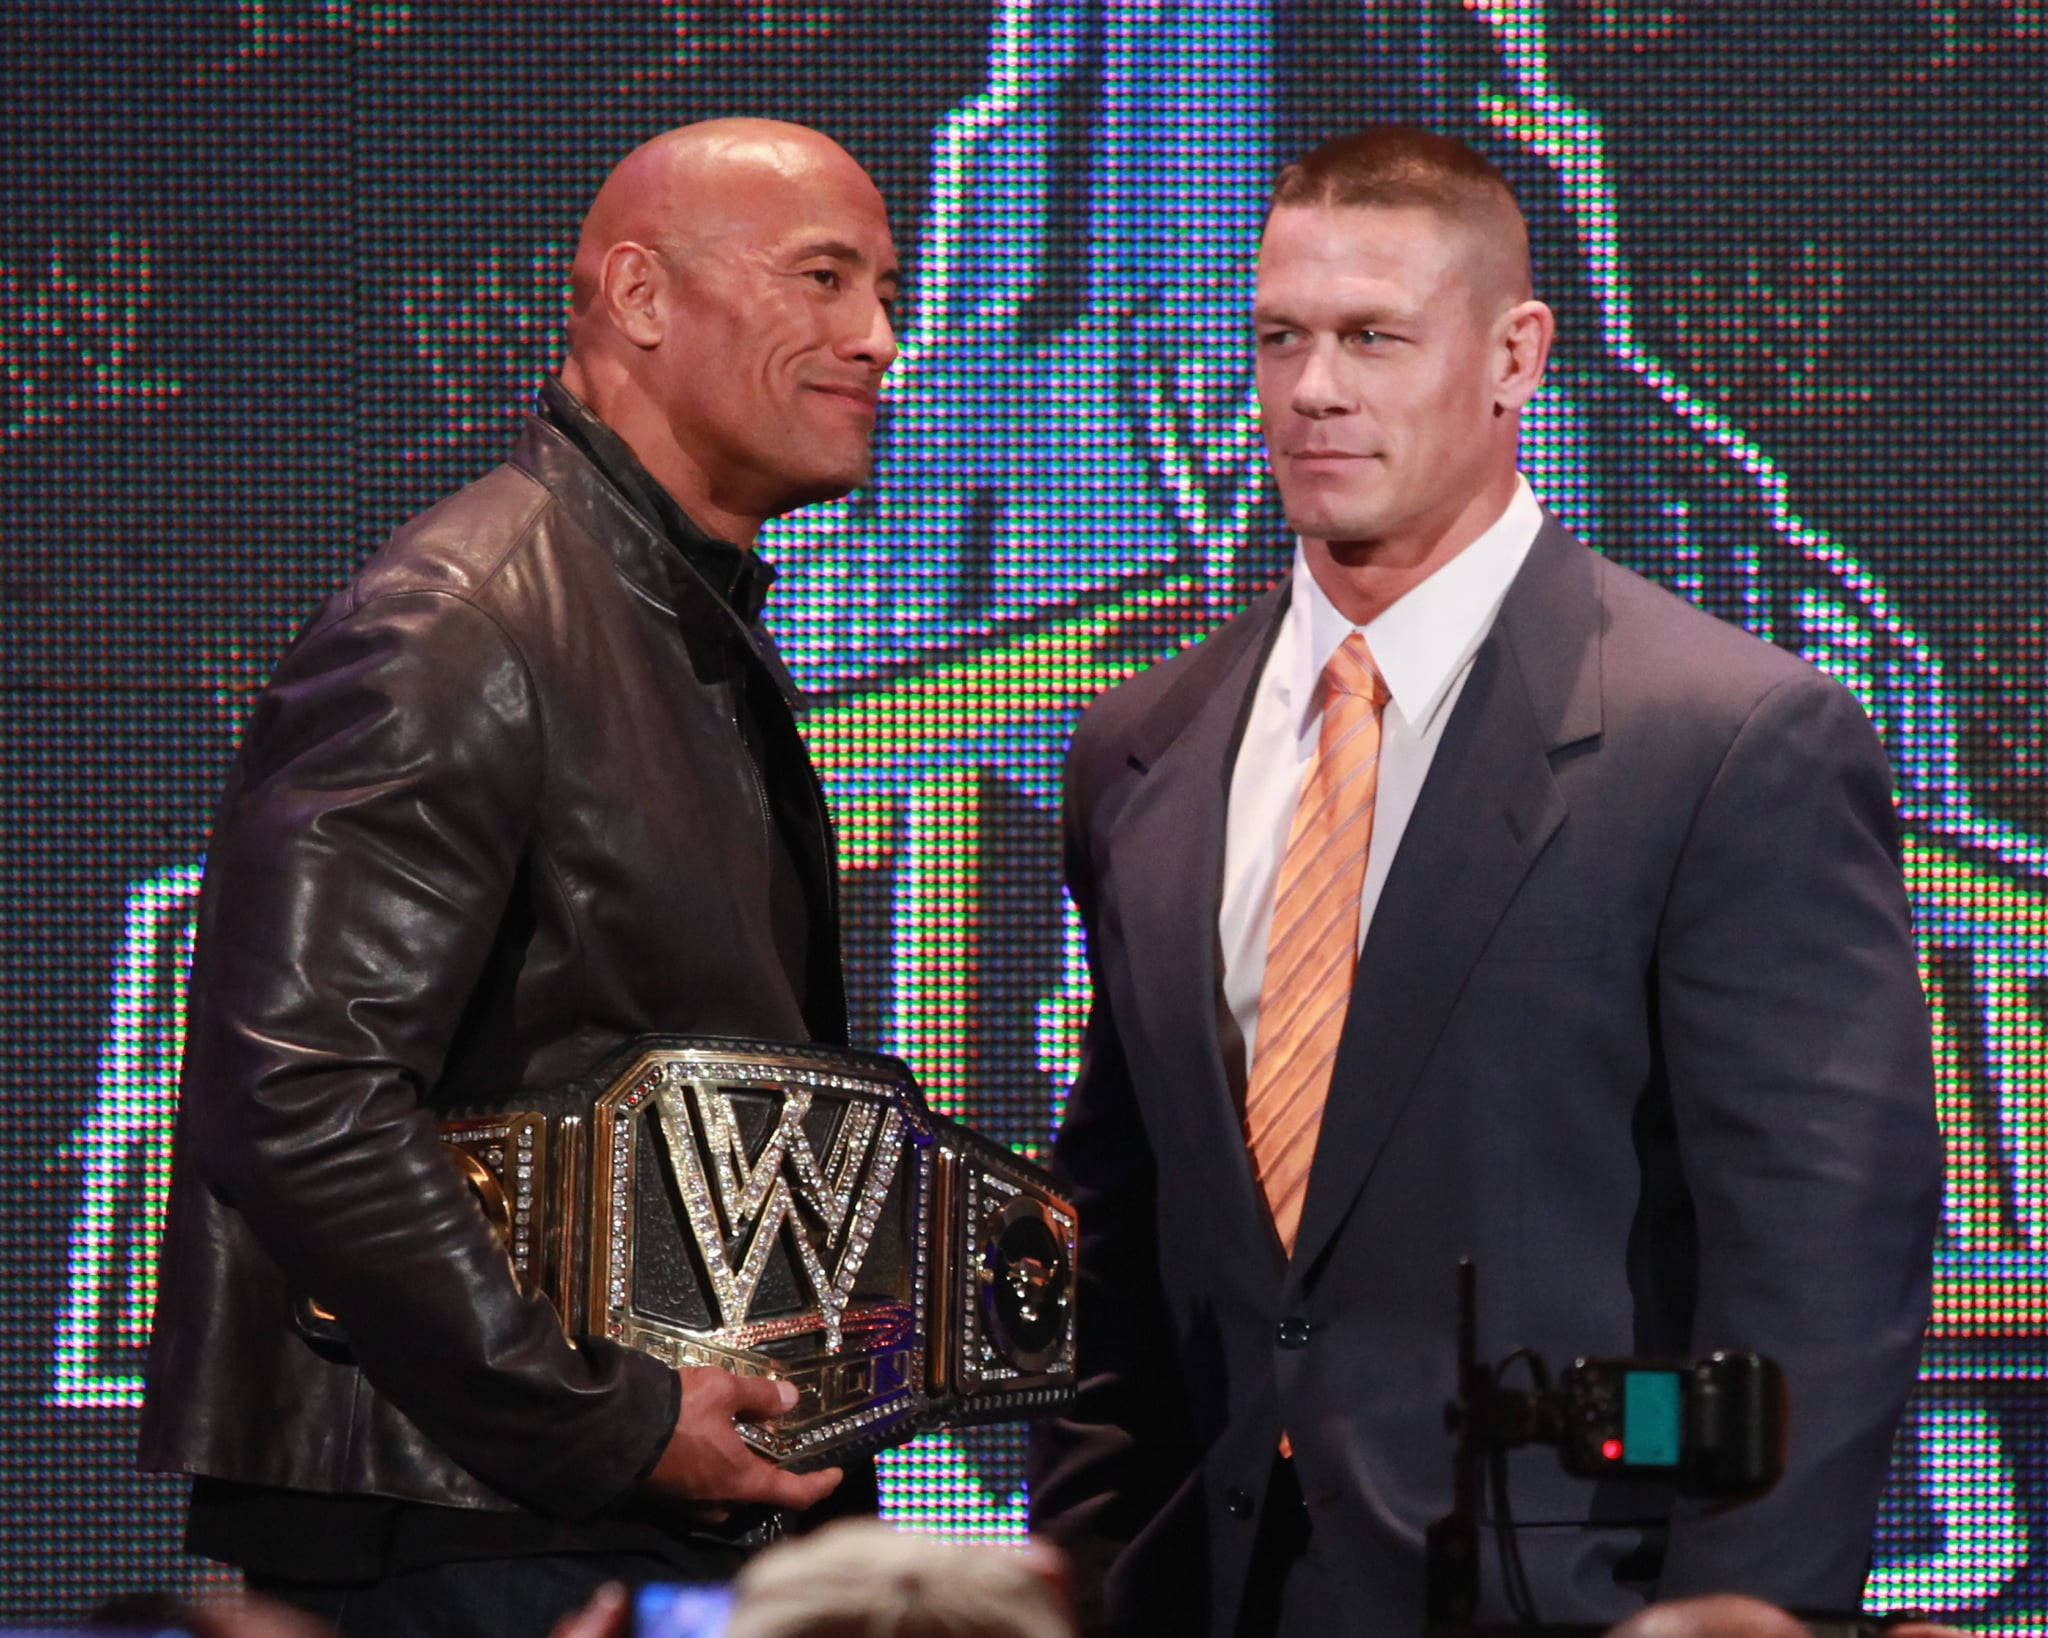 Dwayne Johnson Just Cast John Cena in His New Movie, So the Feud Is Definitely Over